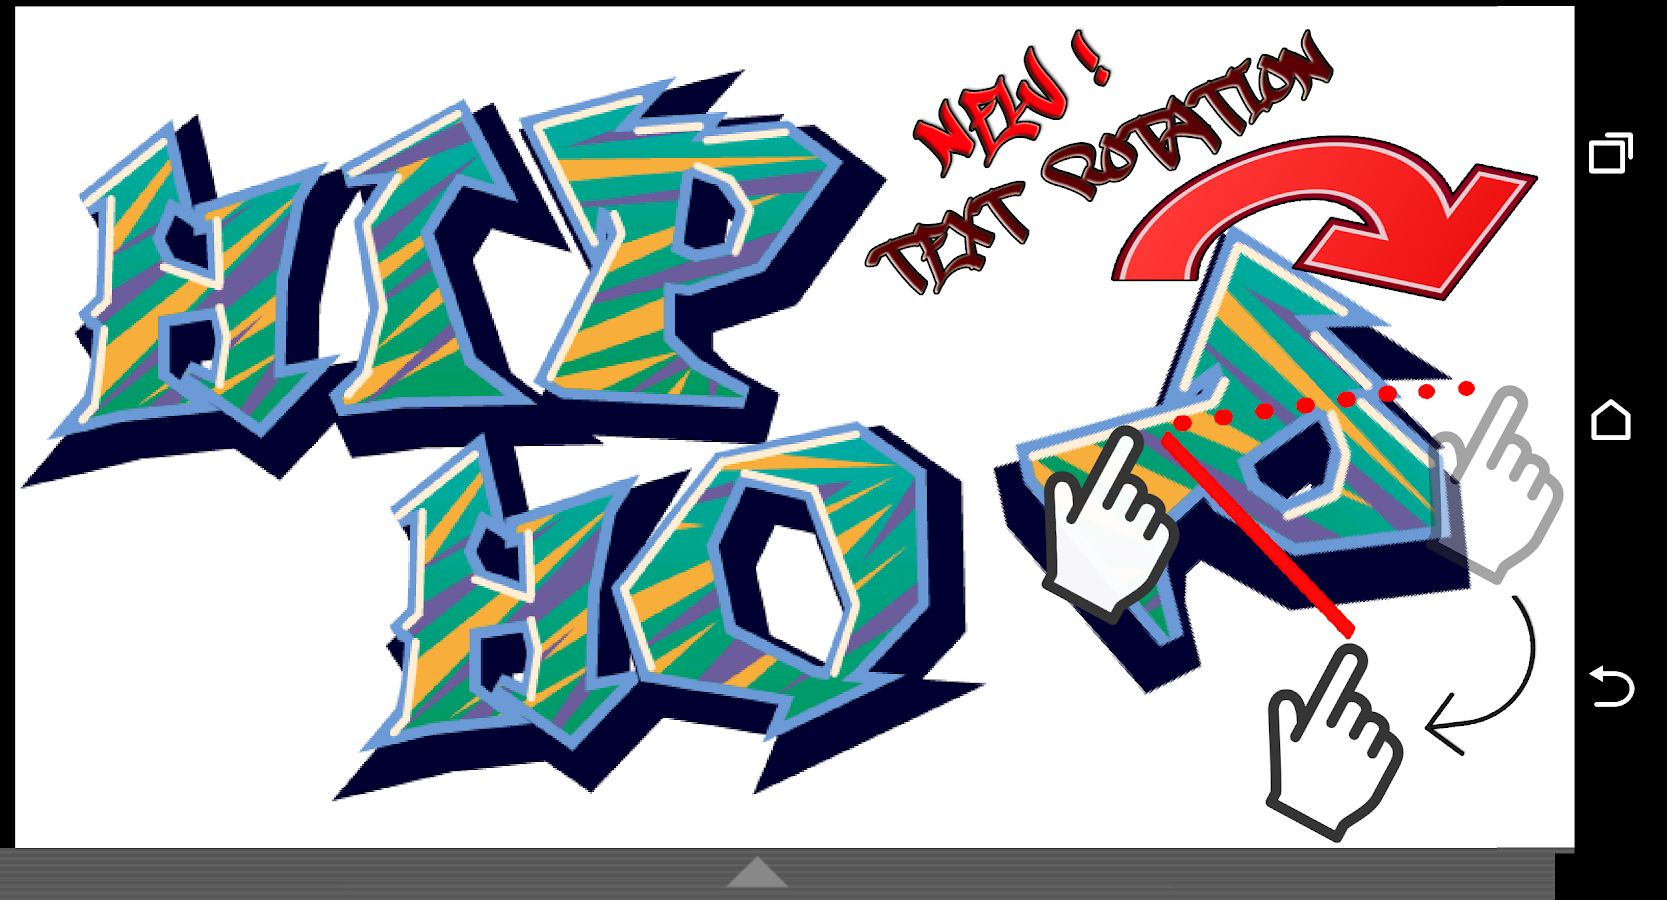 Graffiti creator phone - Graffiti Maker Screenshot